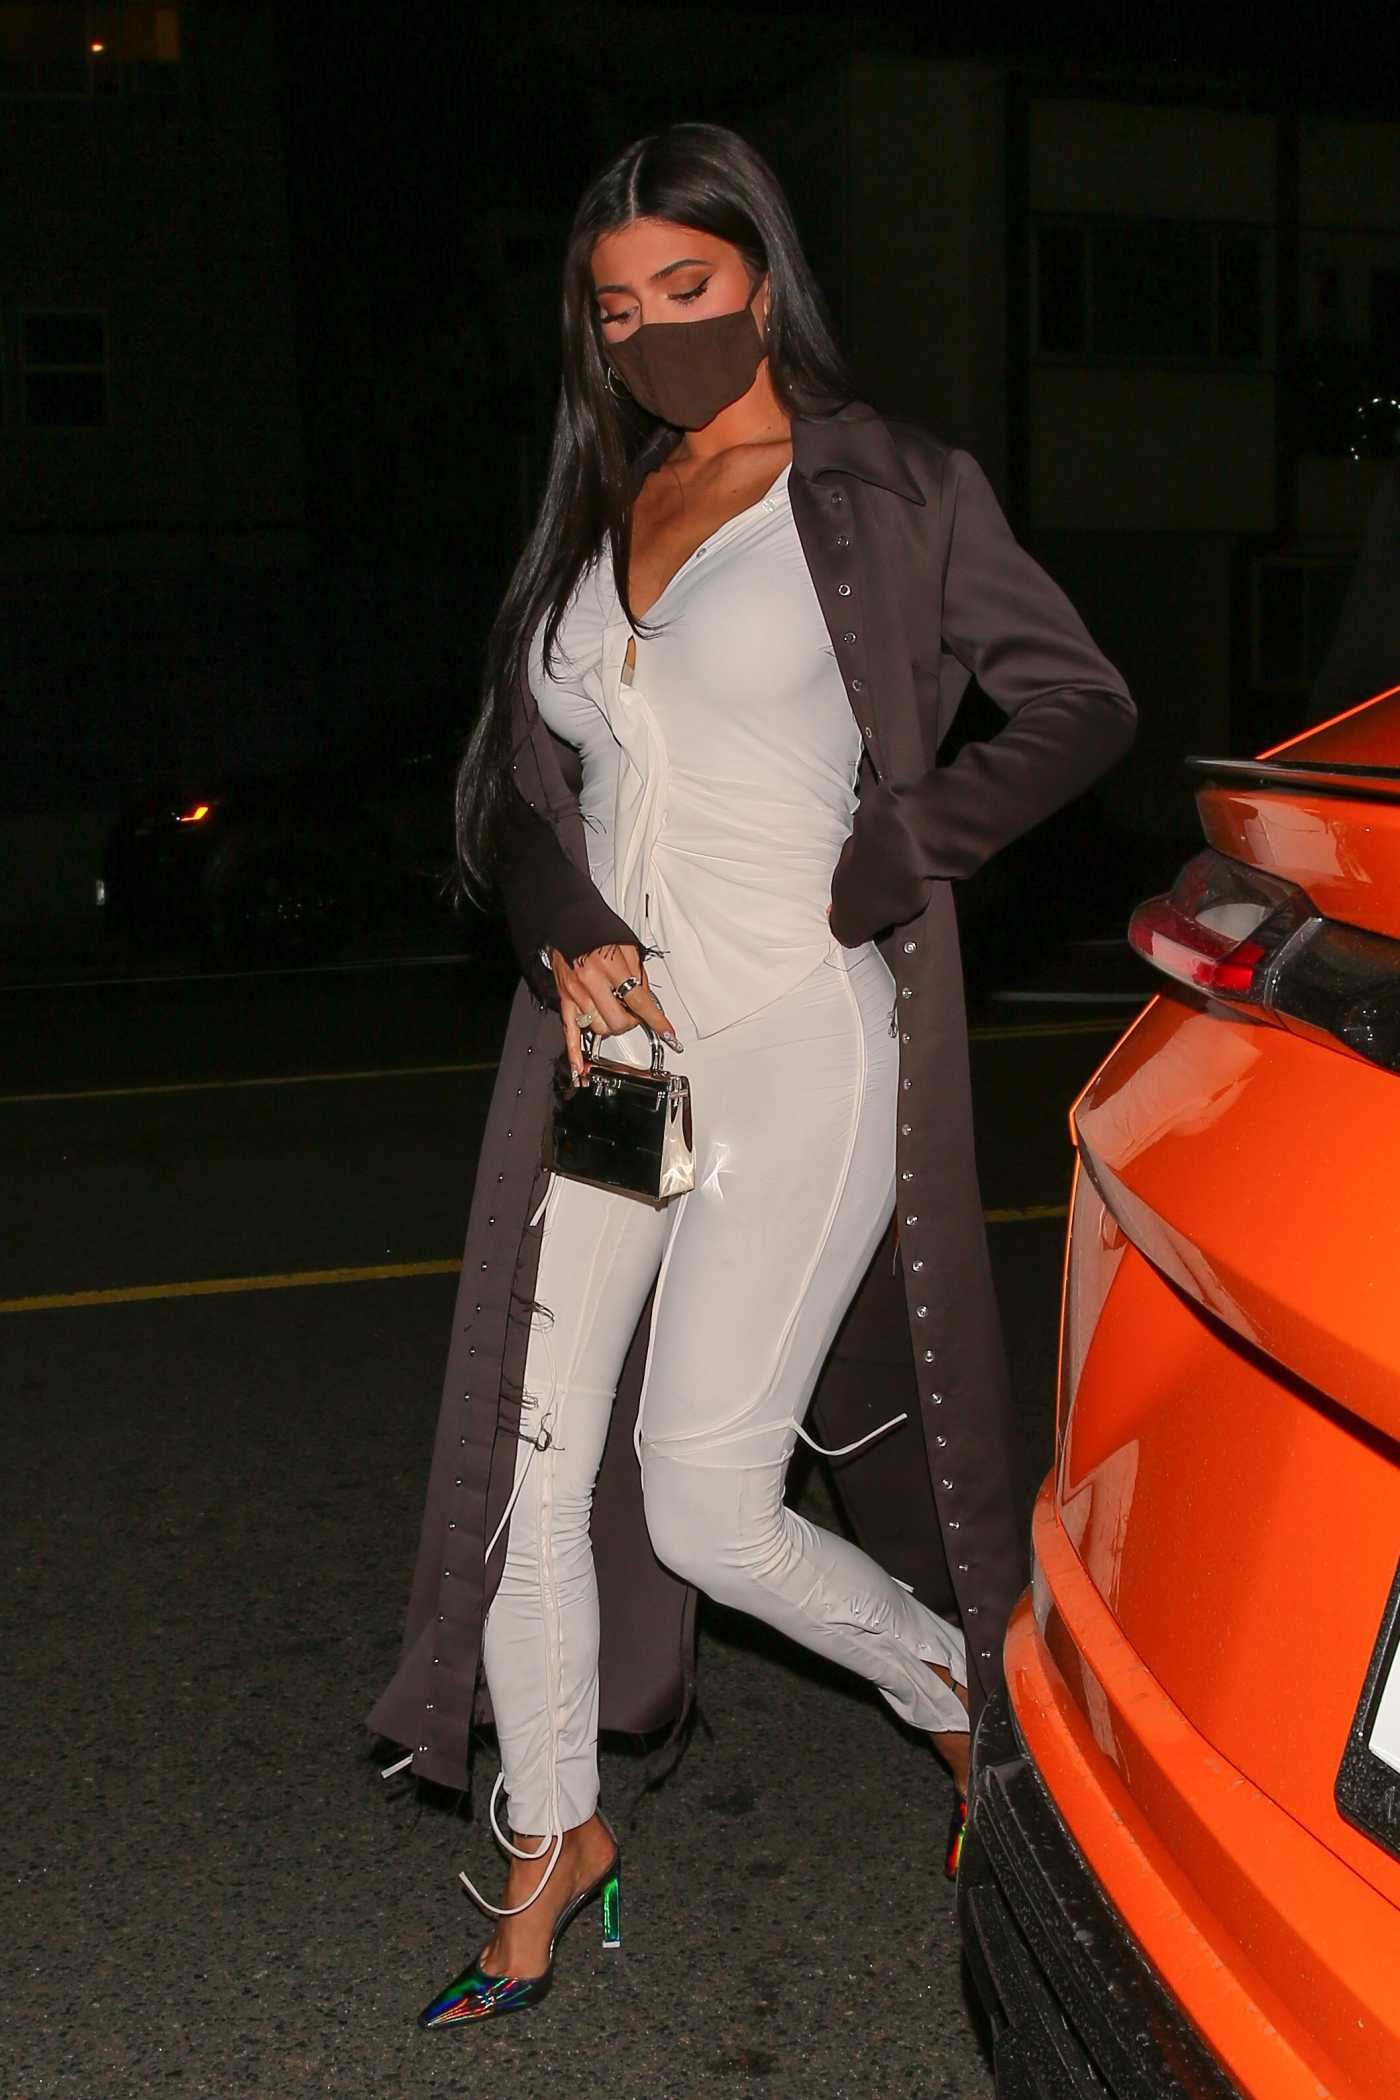 Kylie Jenner in a Brown Trench Coat Leaves Dinner with Friends at Giorgio Baldi in Santa Monica 03/03/2021